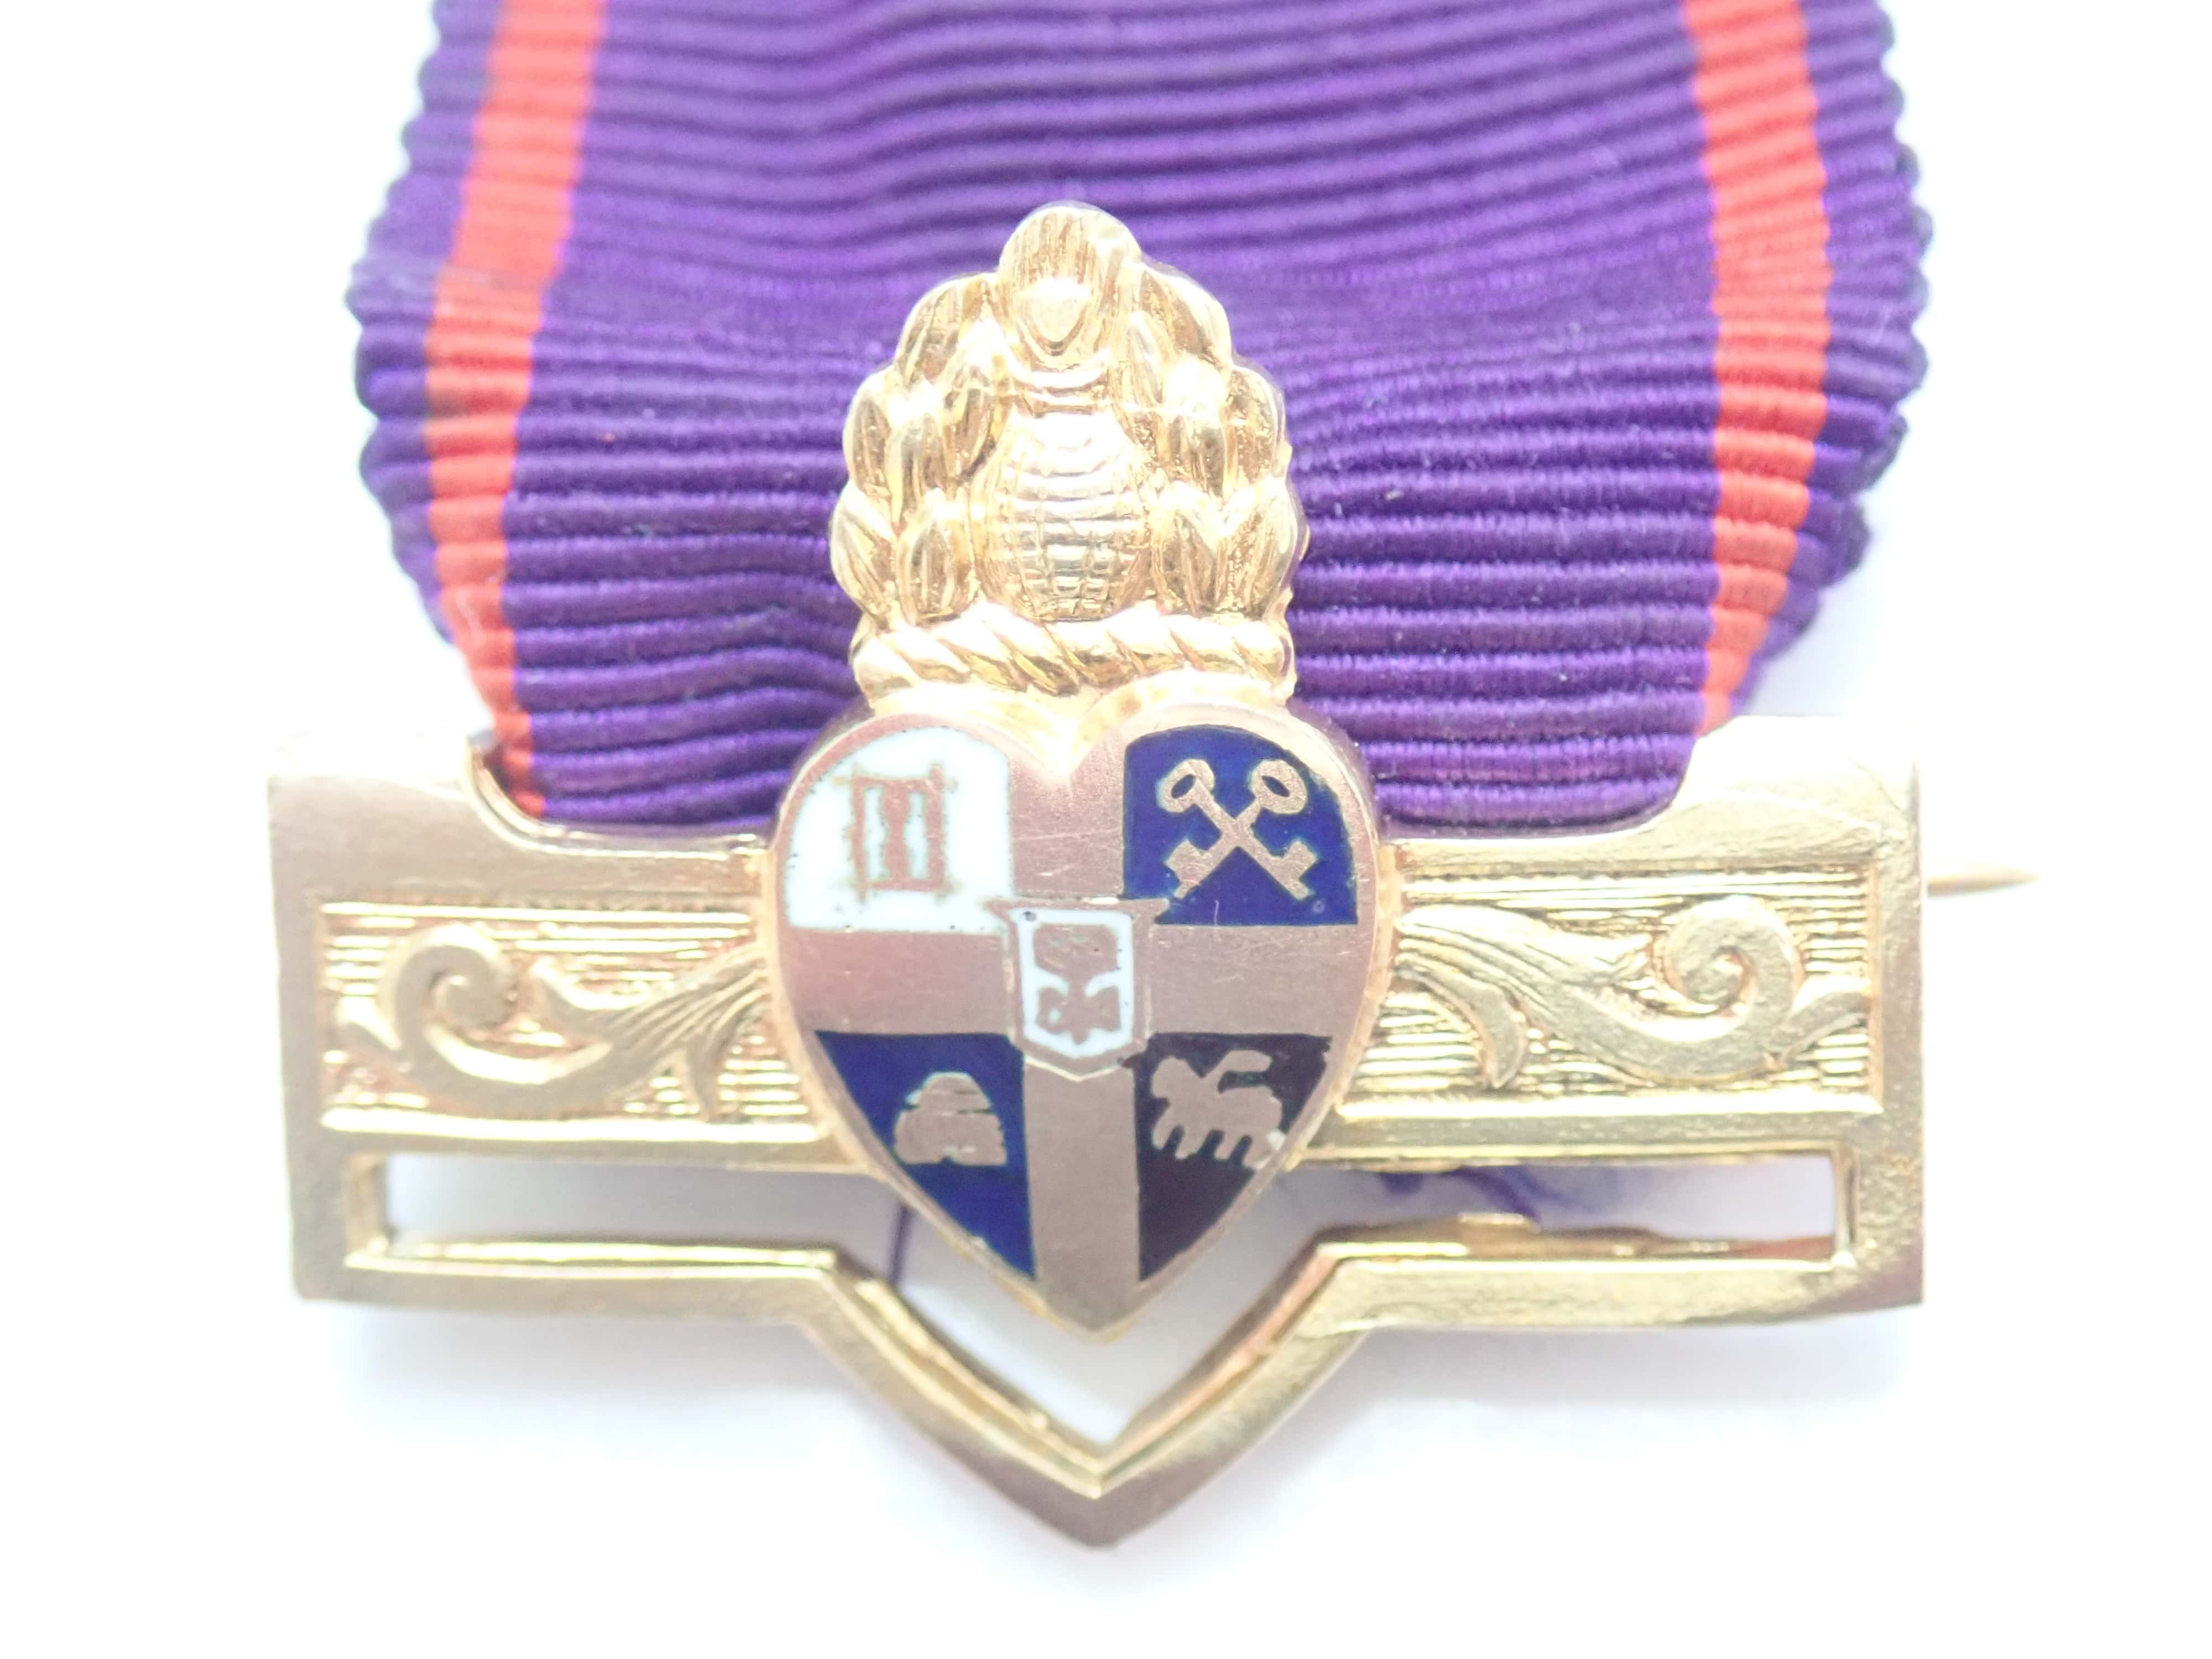 375 9k Yellow Gold Medal – Badge with Ribbon – No Chain Not Scrap 6.1gms #102